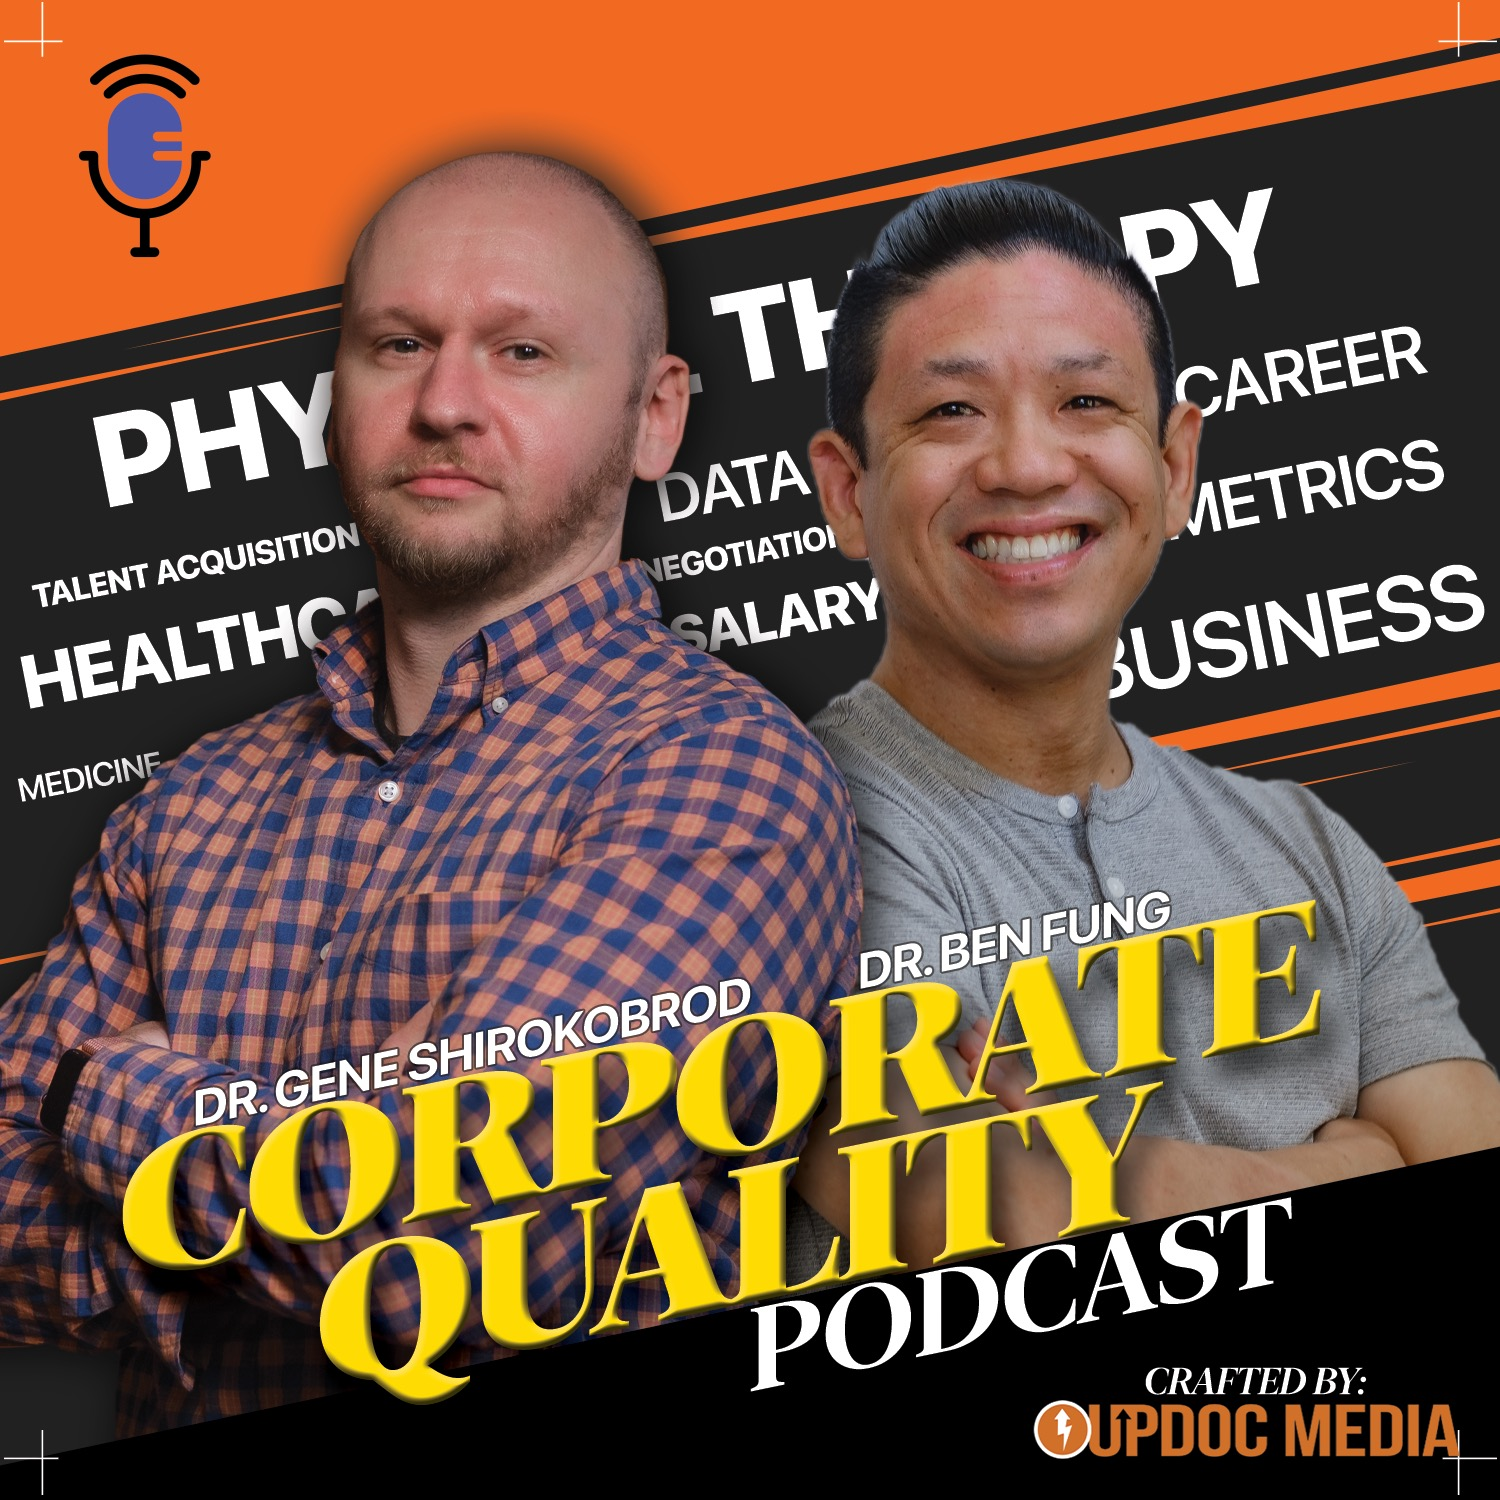 Corporate Quality Podcast by UpDoc Media - Final Cover